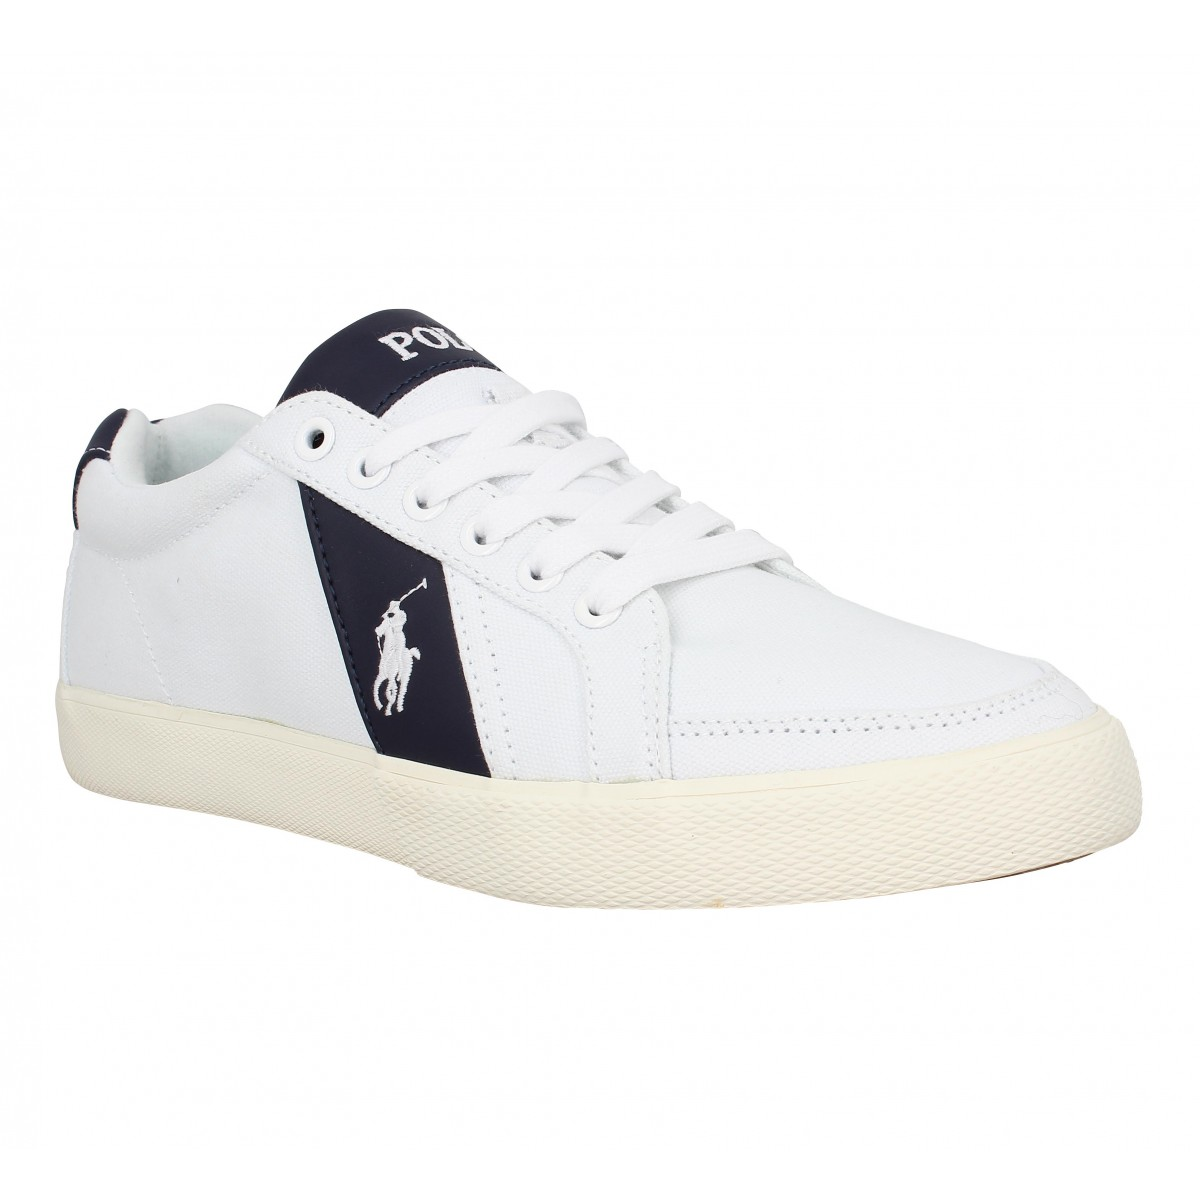 Baskets POLO RALPH LAUREN Hugh toile Homme Blanc